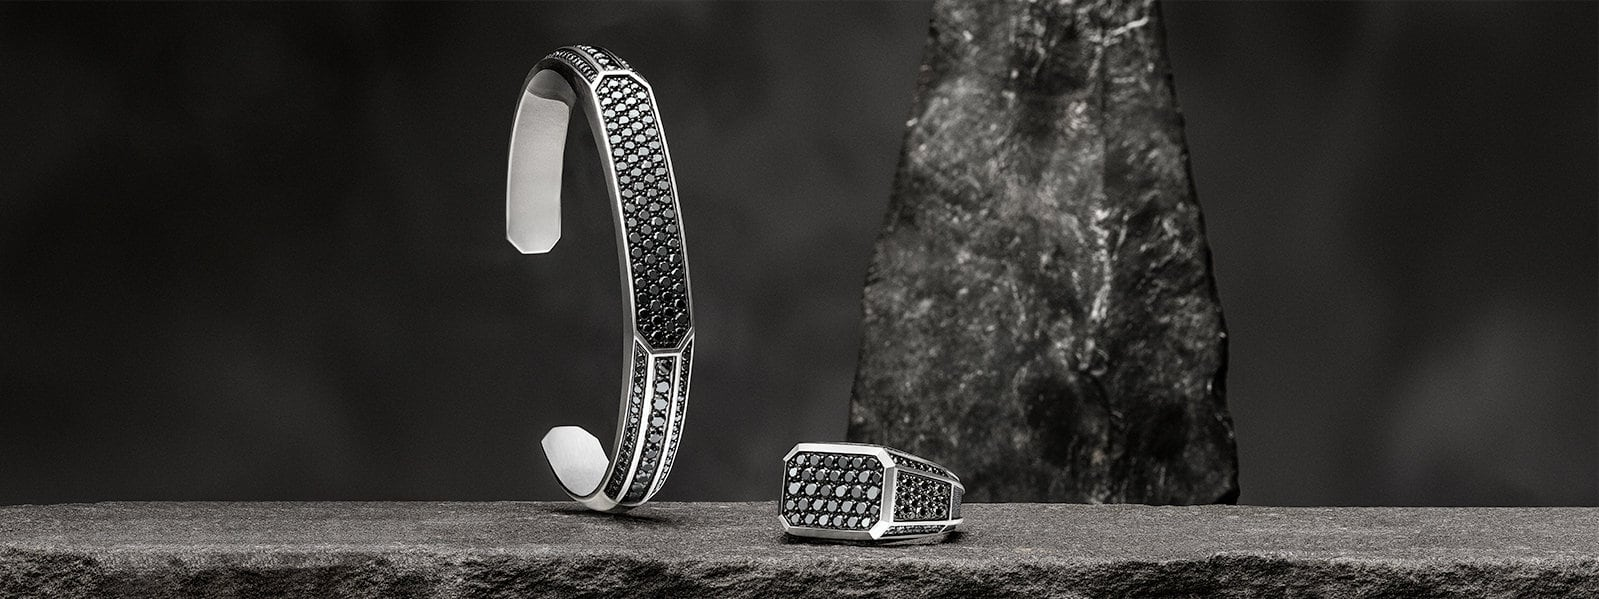 A Pavé cuff bracelet and signet ring in sterling silver with black diamonds on a textured stone.